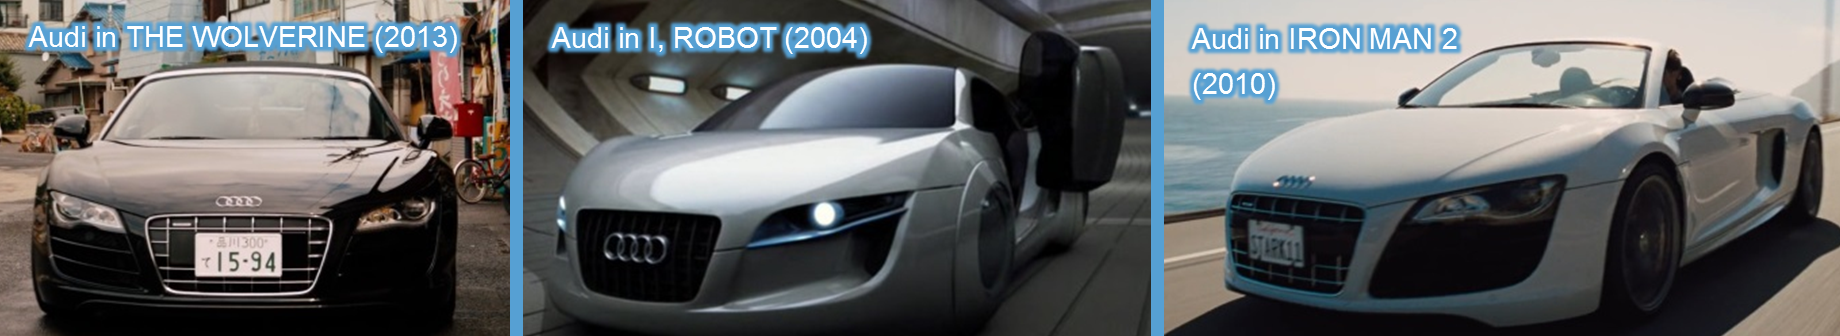 audi in movies